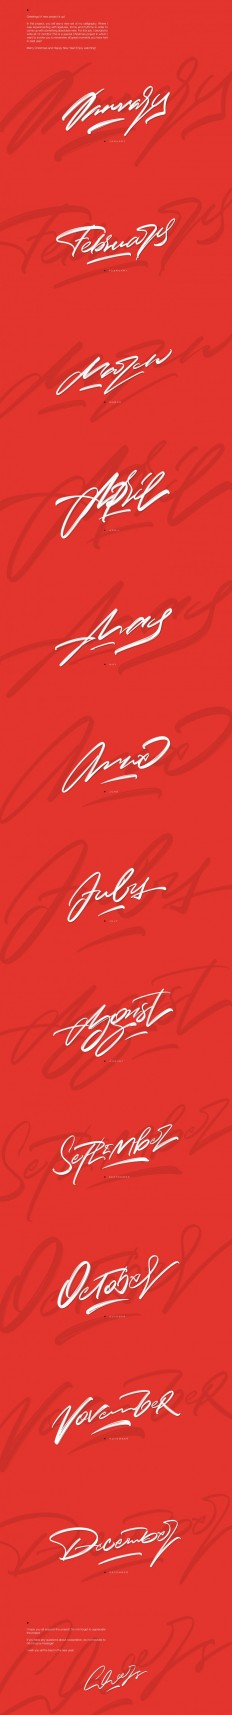 Christmas ?alligraphy Set by Nick Asphodel on Inspirationde